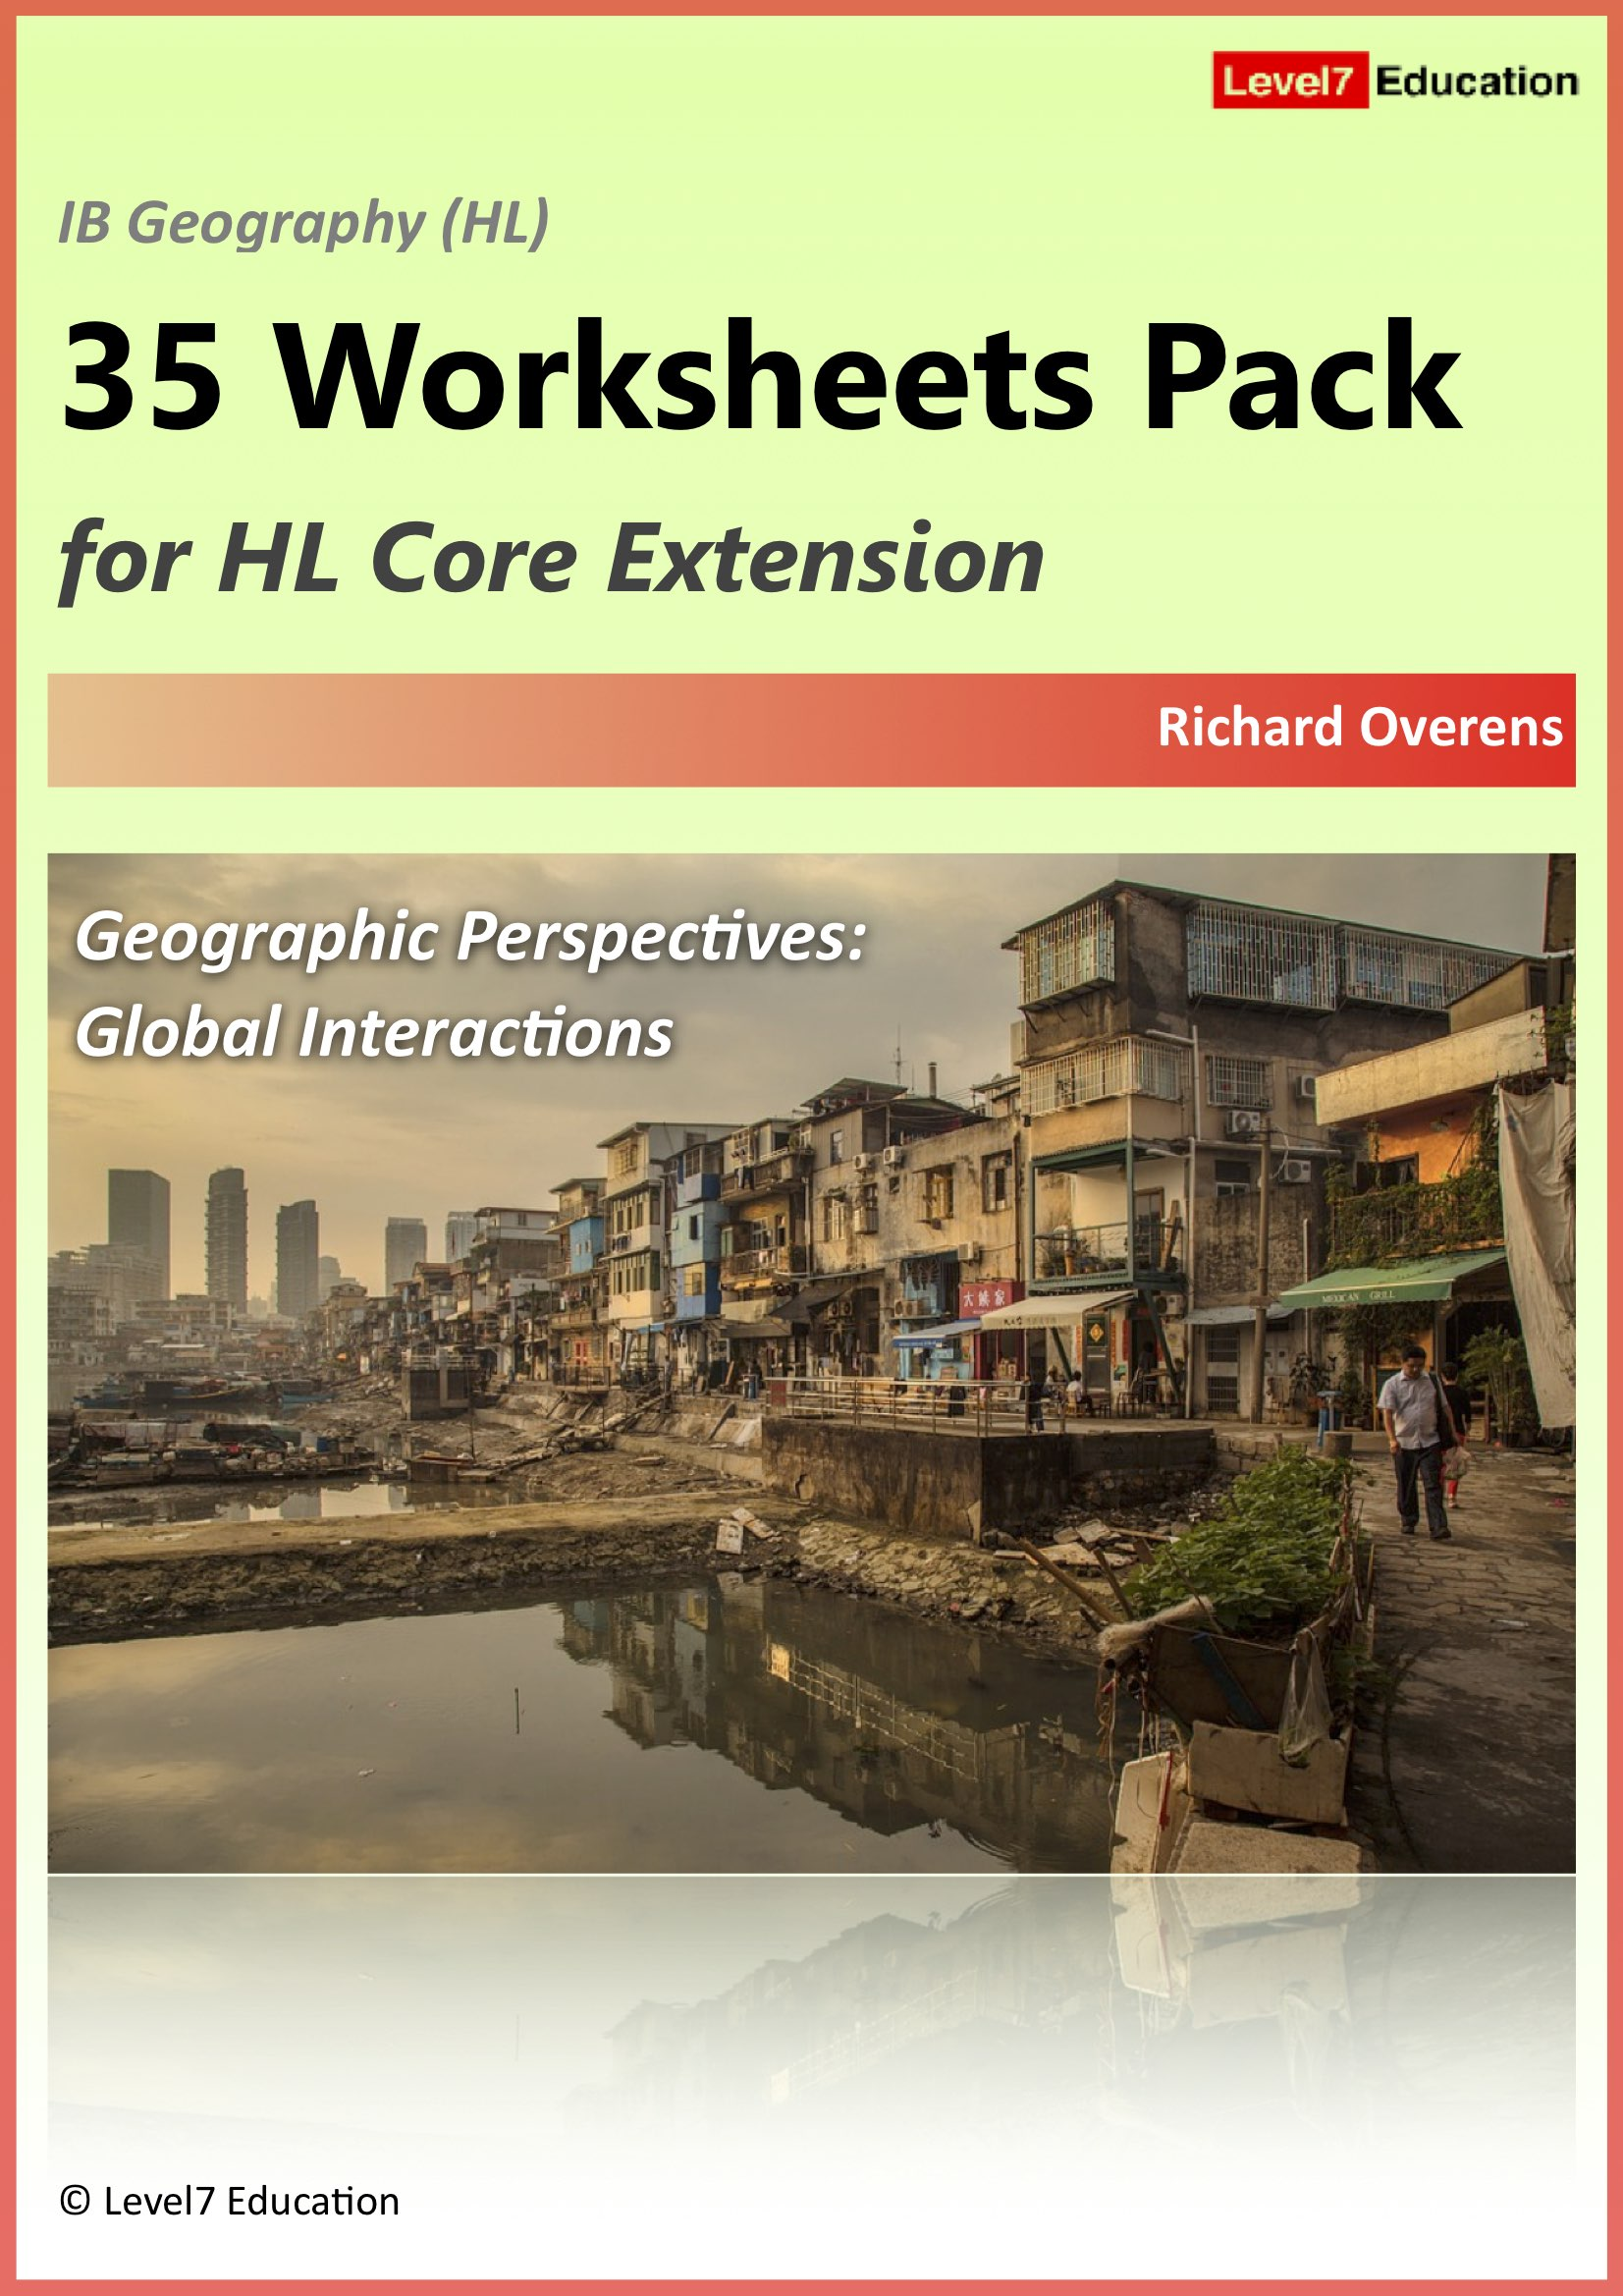 Level7 Education 35 Worksheets Pack for HL Core Extension Coming Soon